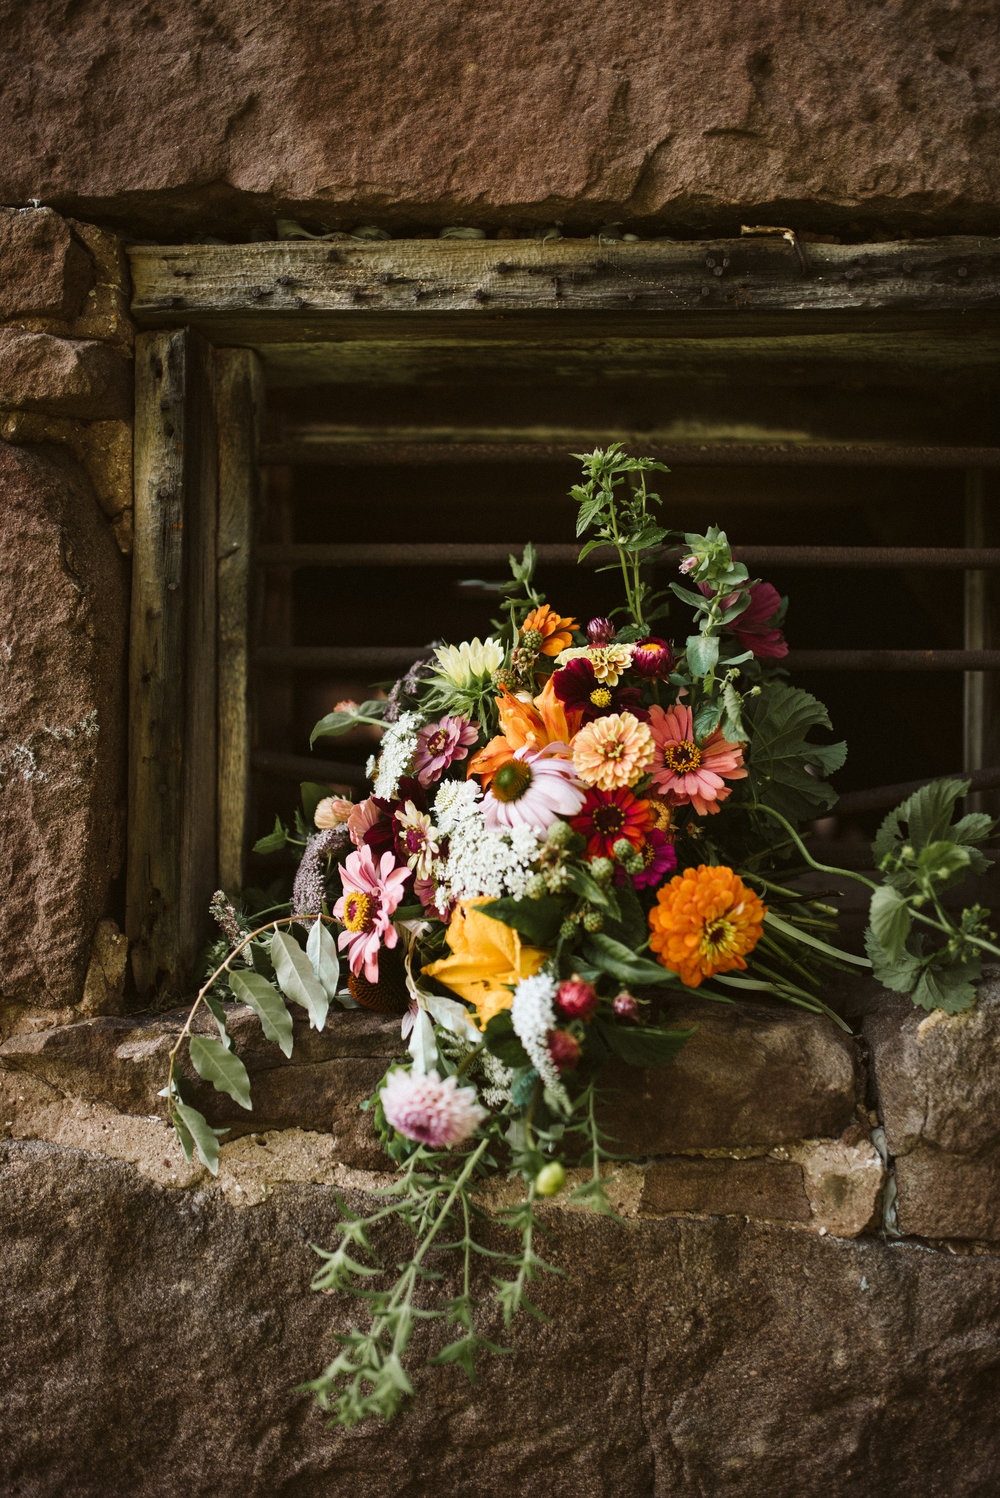 Rocklands Farm, Maryland, Intimate Wedding, Baltimore Wedding Photographer, Sungold Flower Co, Rustic, Romantic, Barn Wedding, Bridal Bouquet with Pink and Orange Flowers